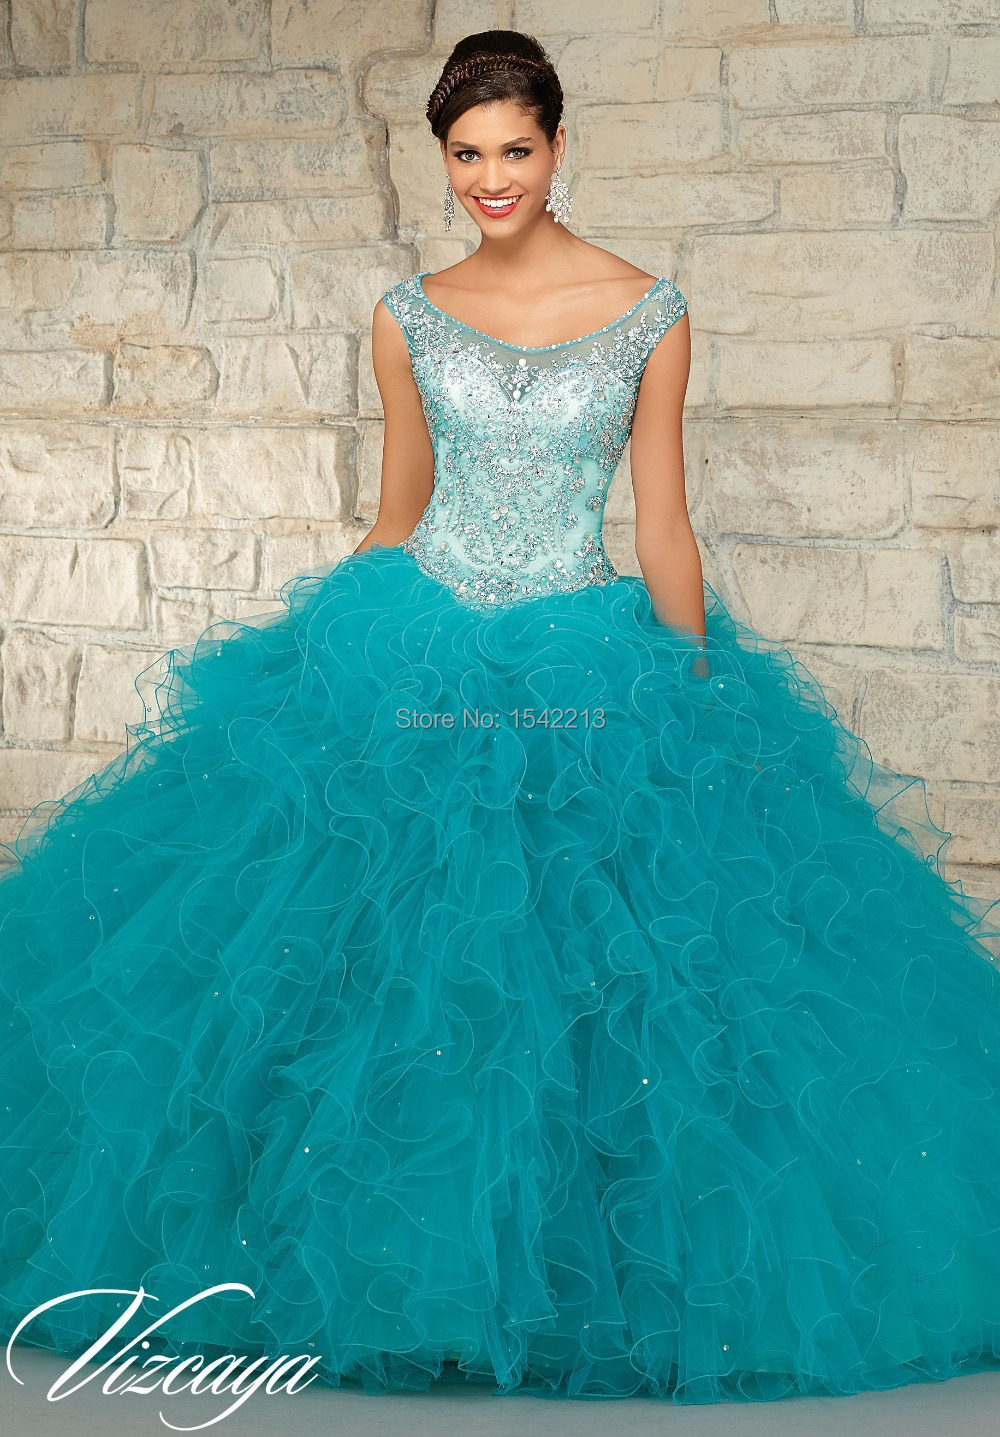 Boutique Chic Beaded Hot Pink Turquoise Blue Quinceanera Dresses ...